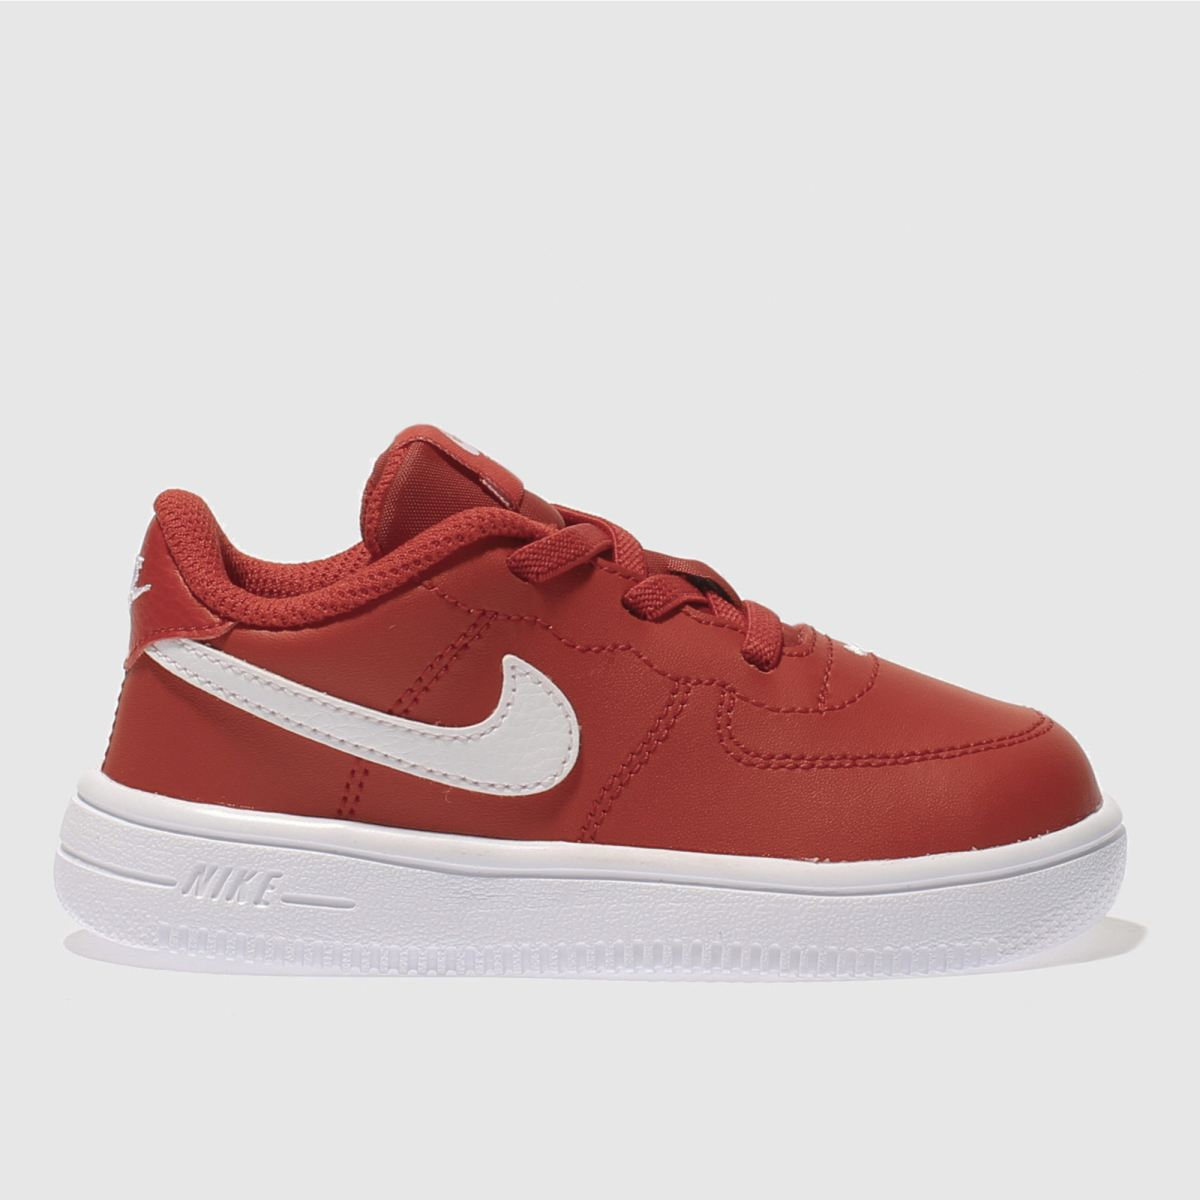 Nike Red Force 1 18 Bt Unisex Toddler Toddler